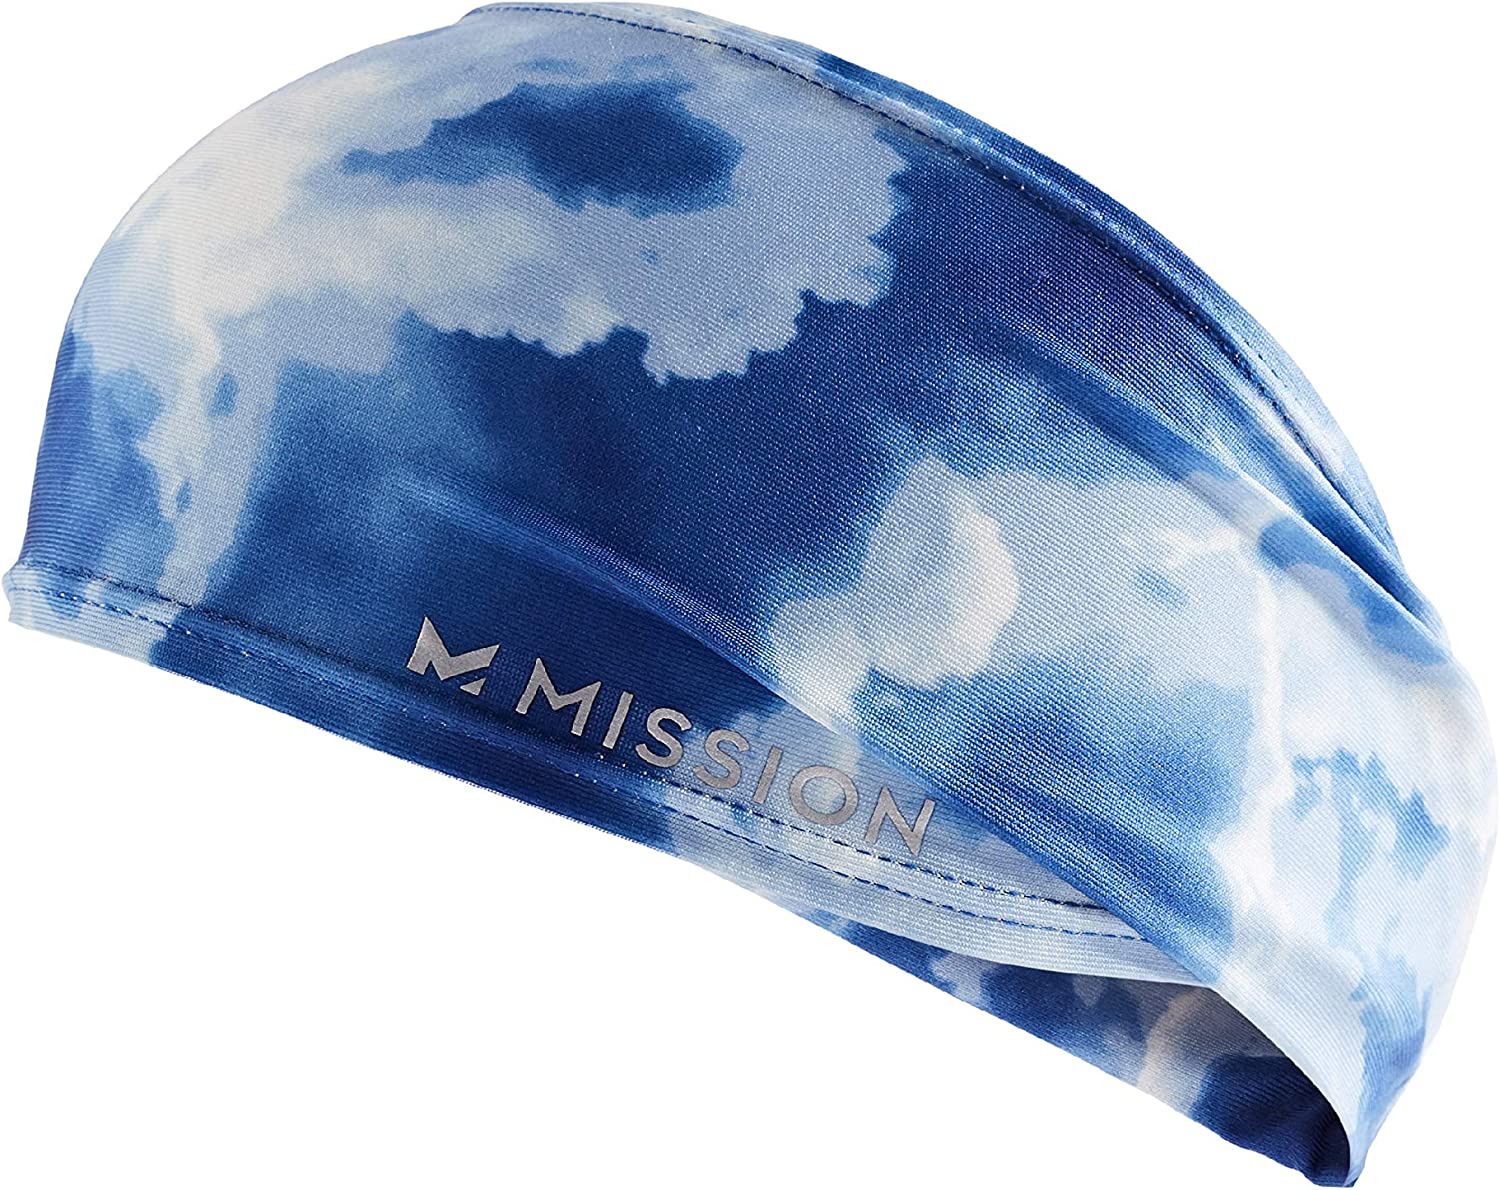 MISSION Cooling Tapered Headband- Cools Instantly When Wet, UPF 50, No Slip